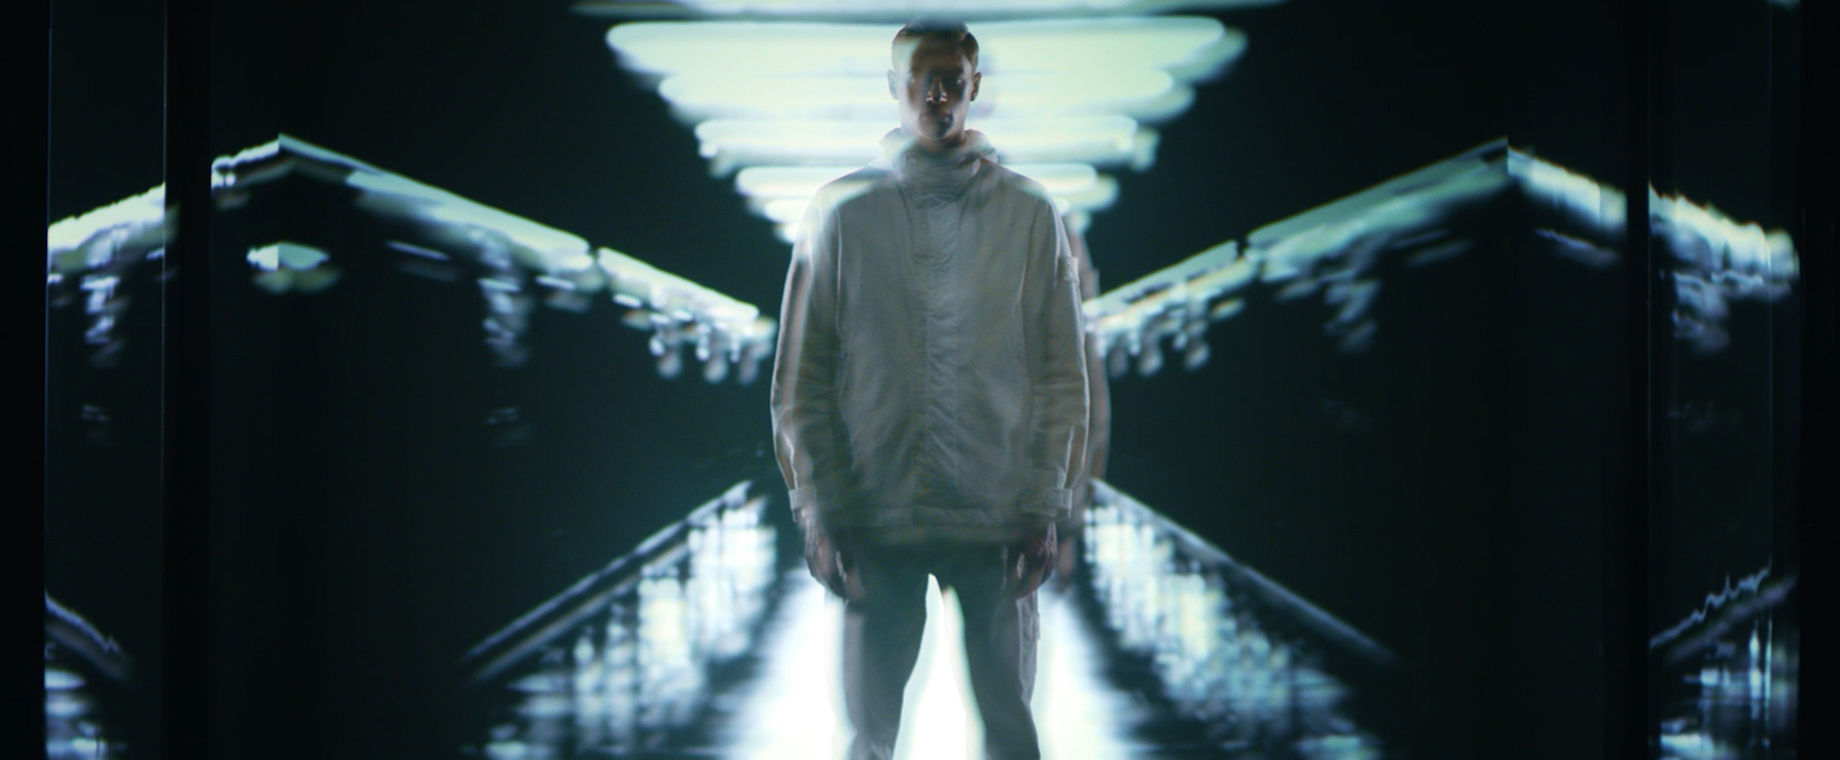 Model wearing off white hooded jacket standing in front of wall with video projection.